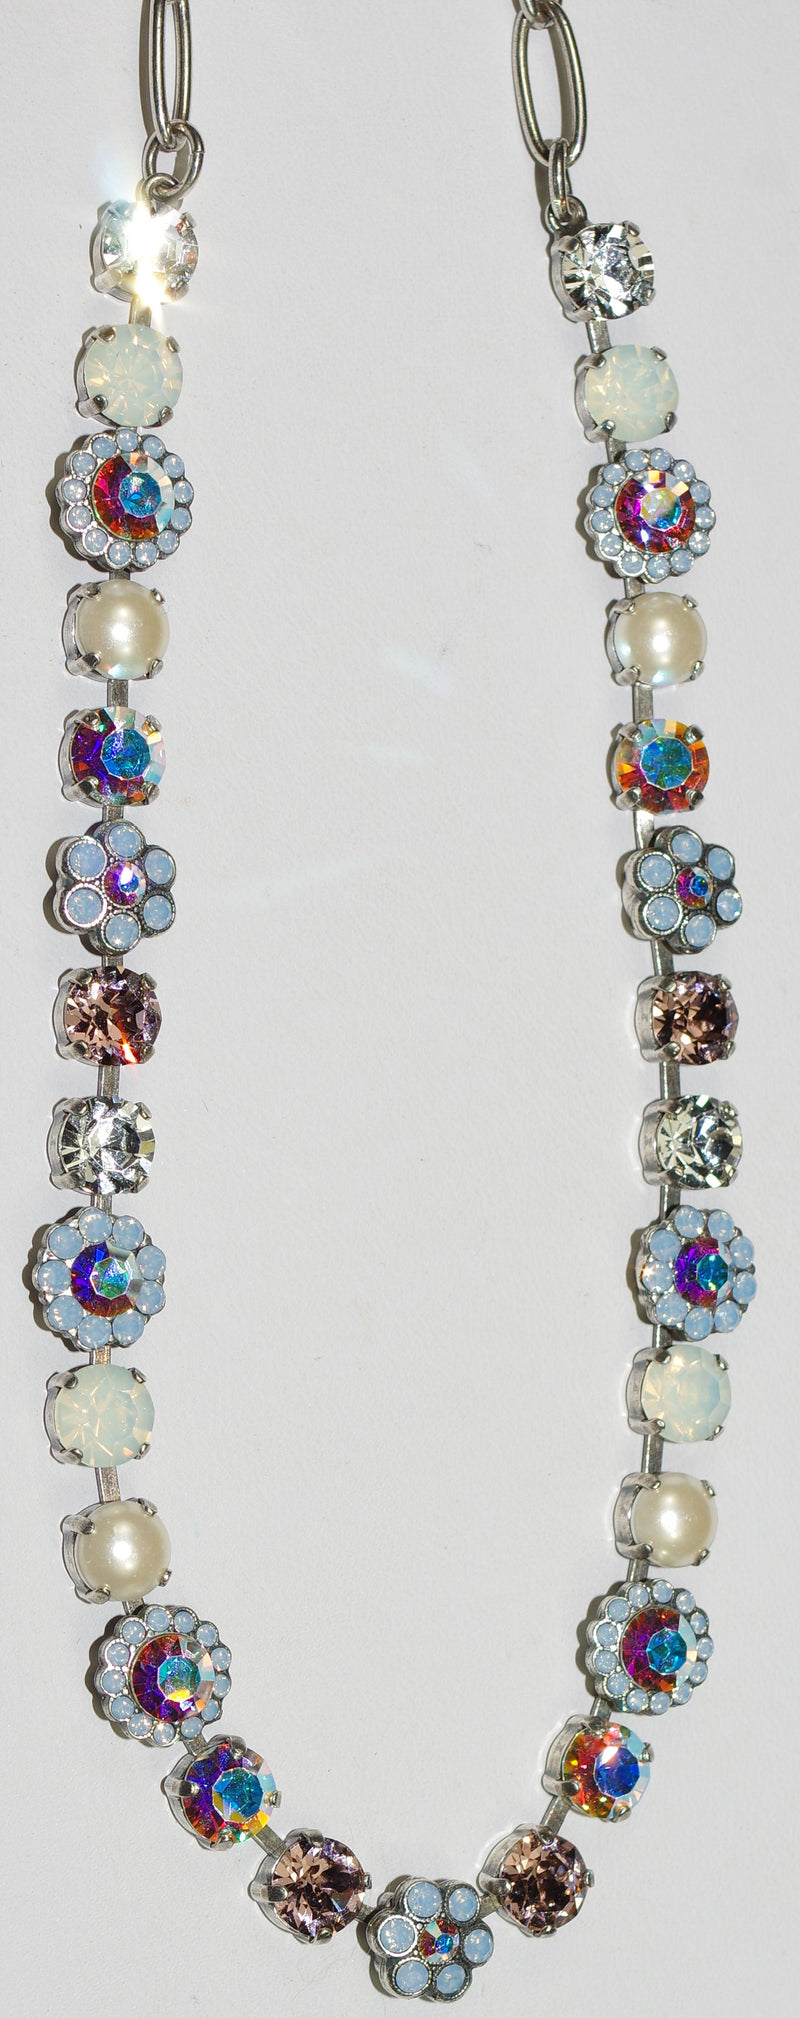 "MARIANA NECKLACE COSMO JAYNE: white, a/b, pink, blue stones in silver setting, 18"" adjustable chain"